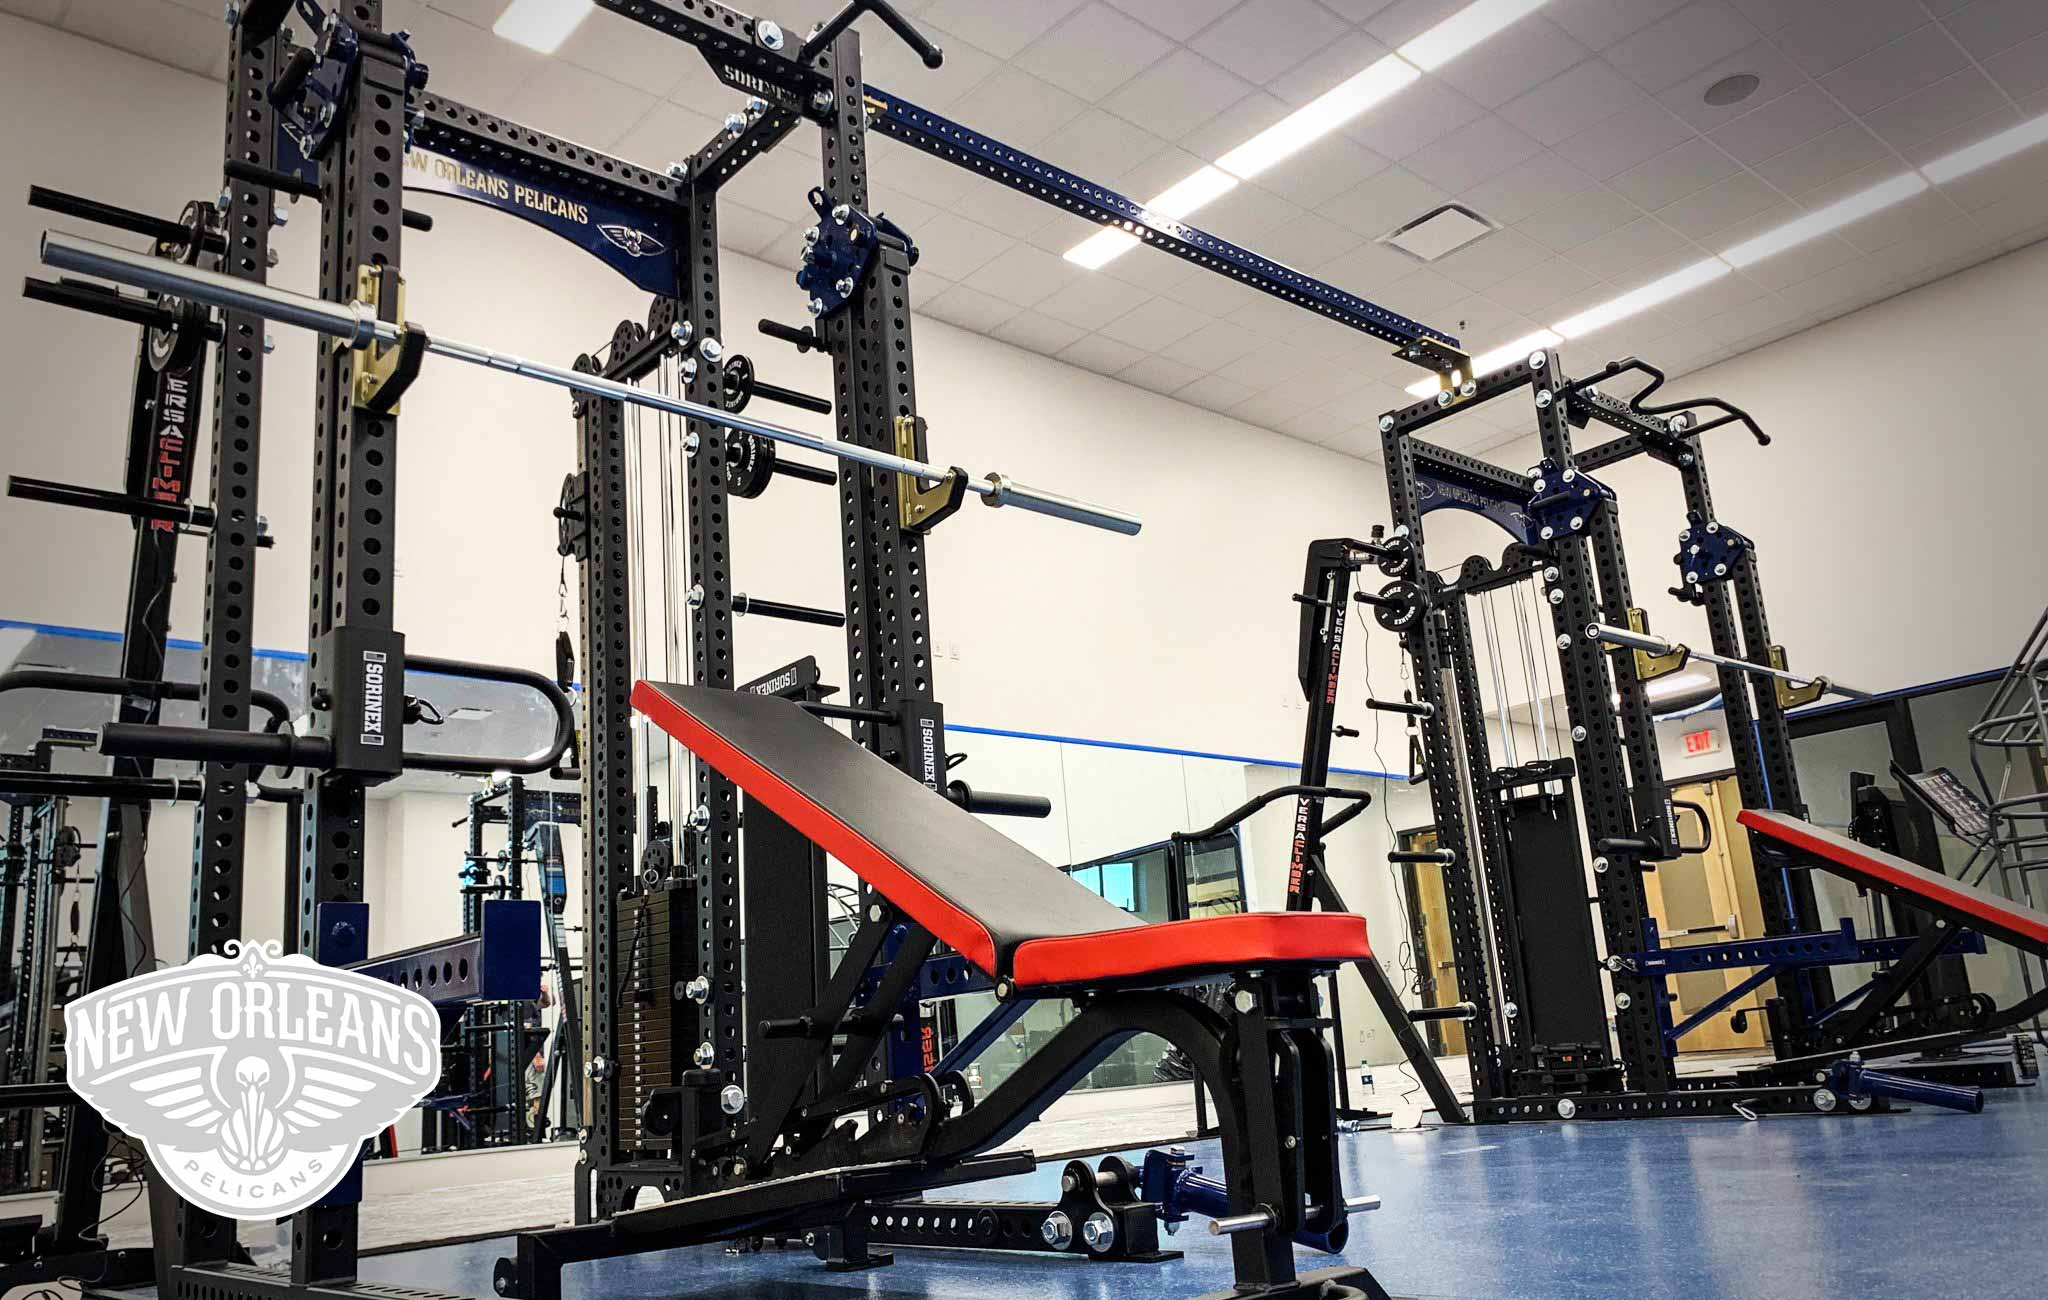 New Orleans Pelicans Sorinex strength and conditioning facility